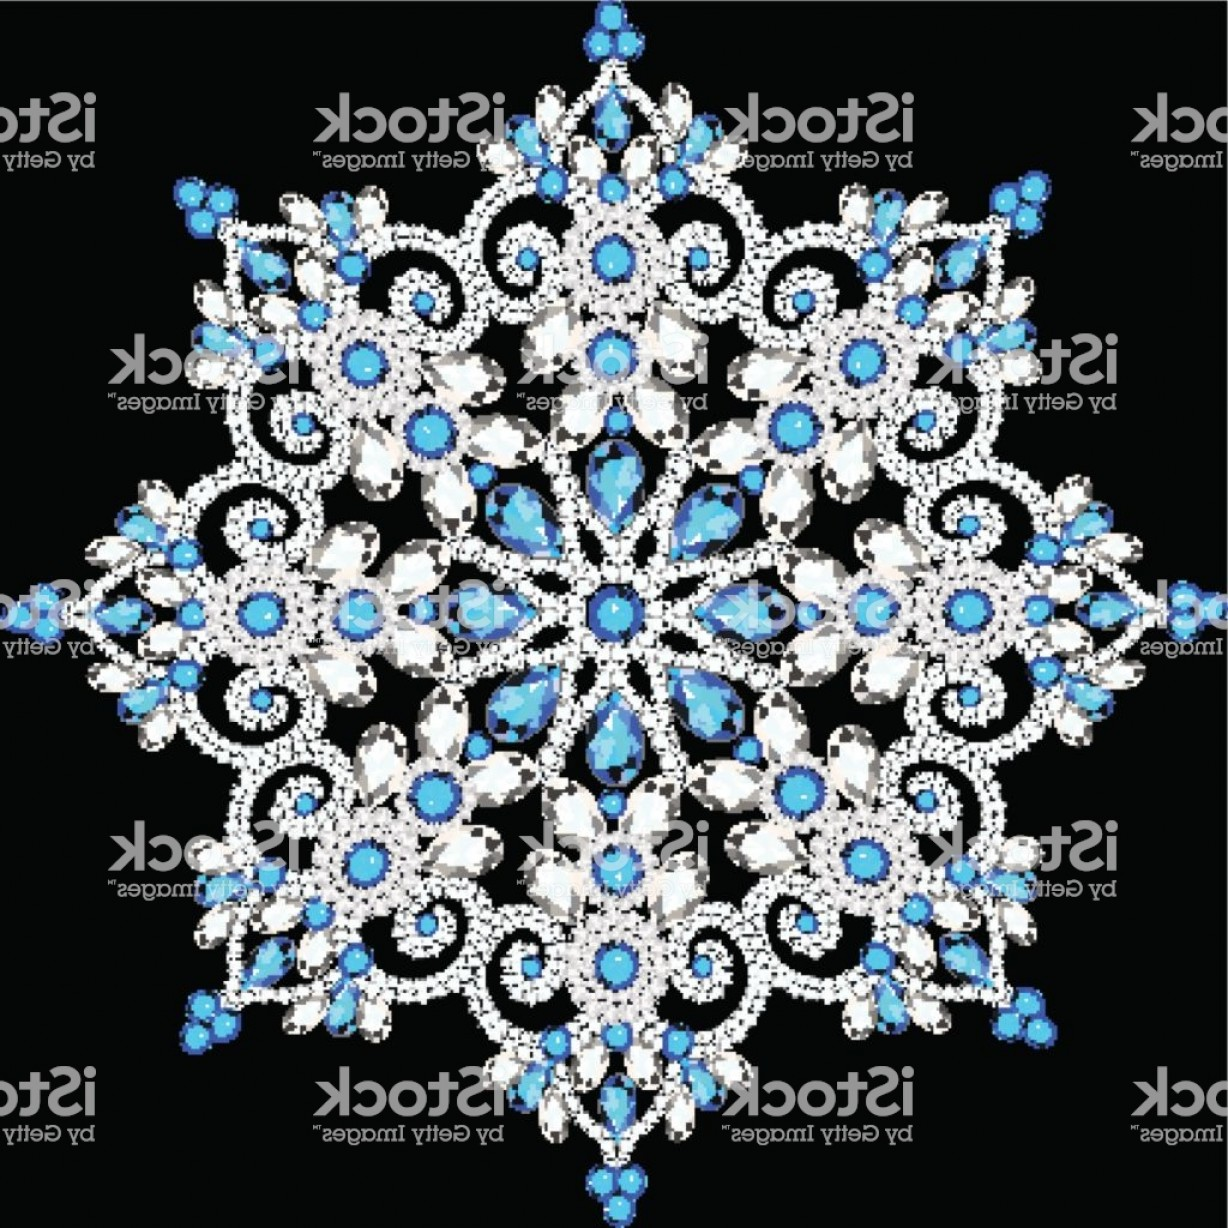 Aqua Victorian Medallions Vectors: Beautiful Jewelry Medallion Brooch Decoration On Neck Mandala Gm